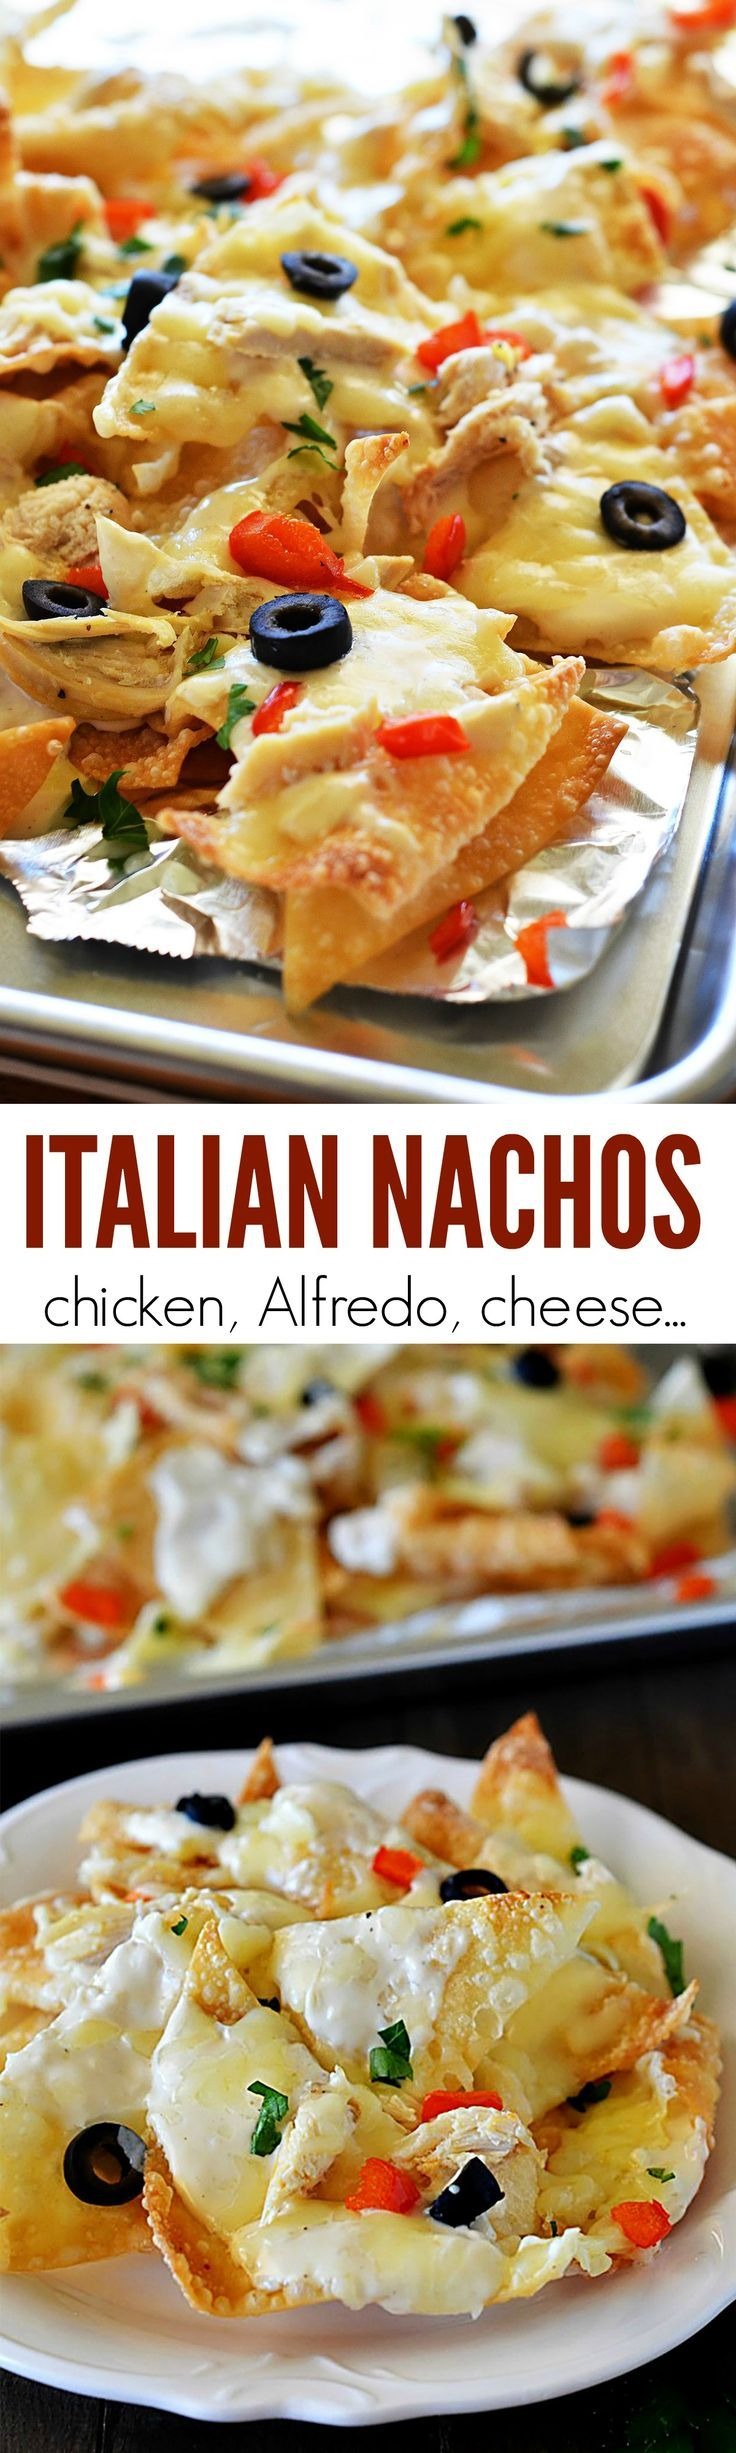 These nachos will have you begging for more! Grilled chicken, Alfredo sauce and lots of goeey cheese!